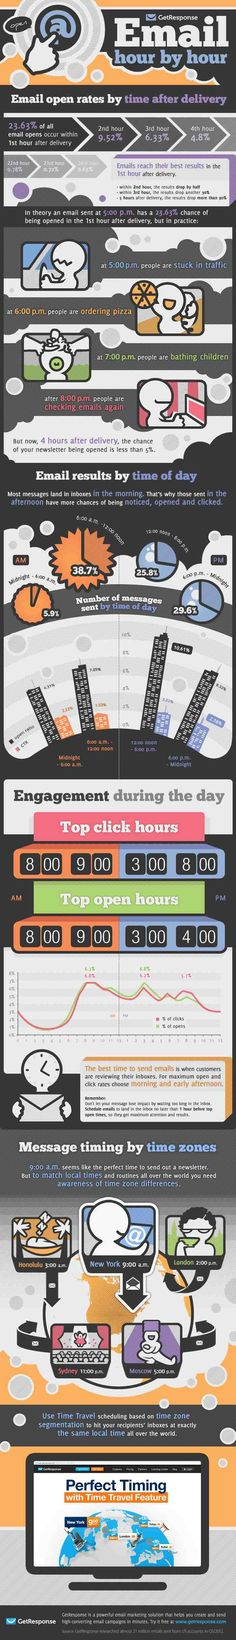 Best Time To Send eMails #infographic